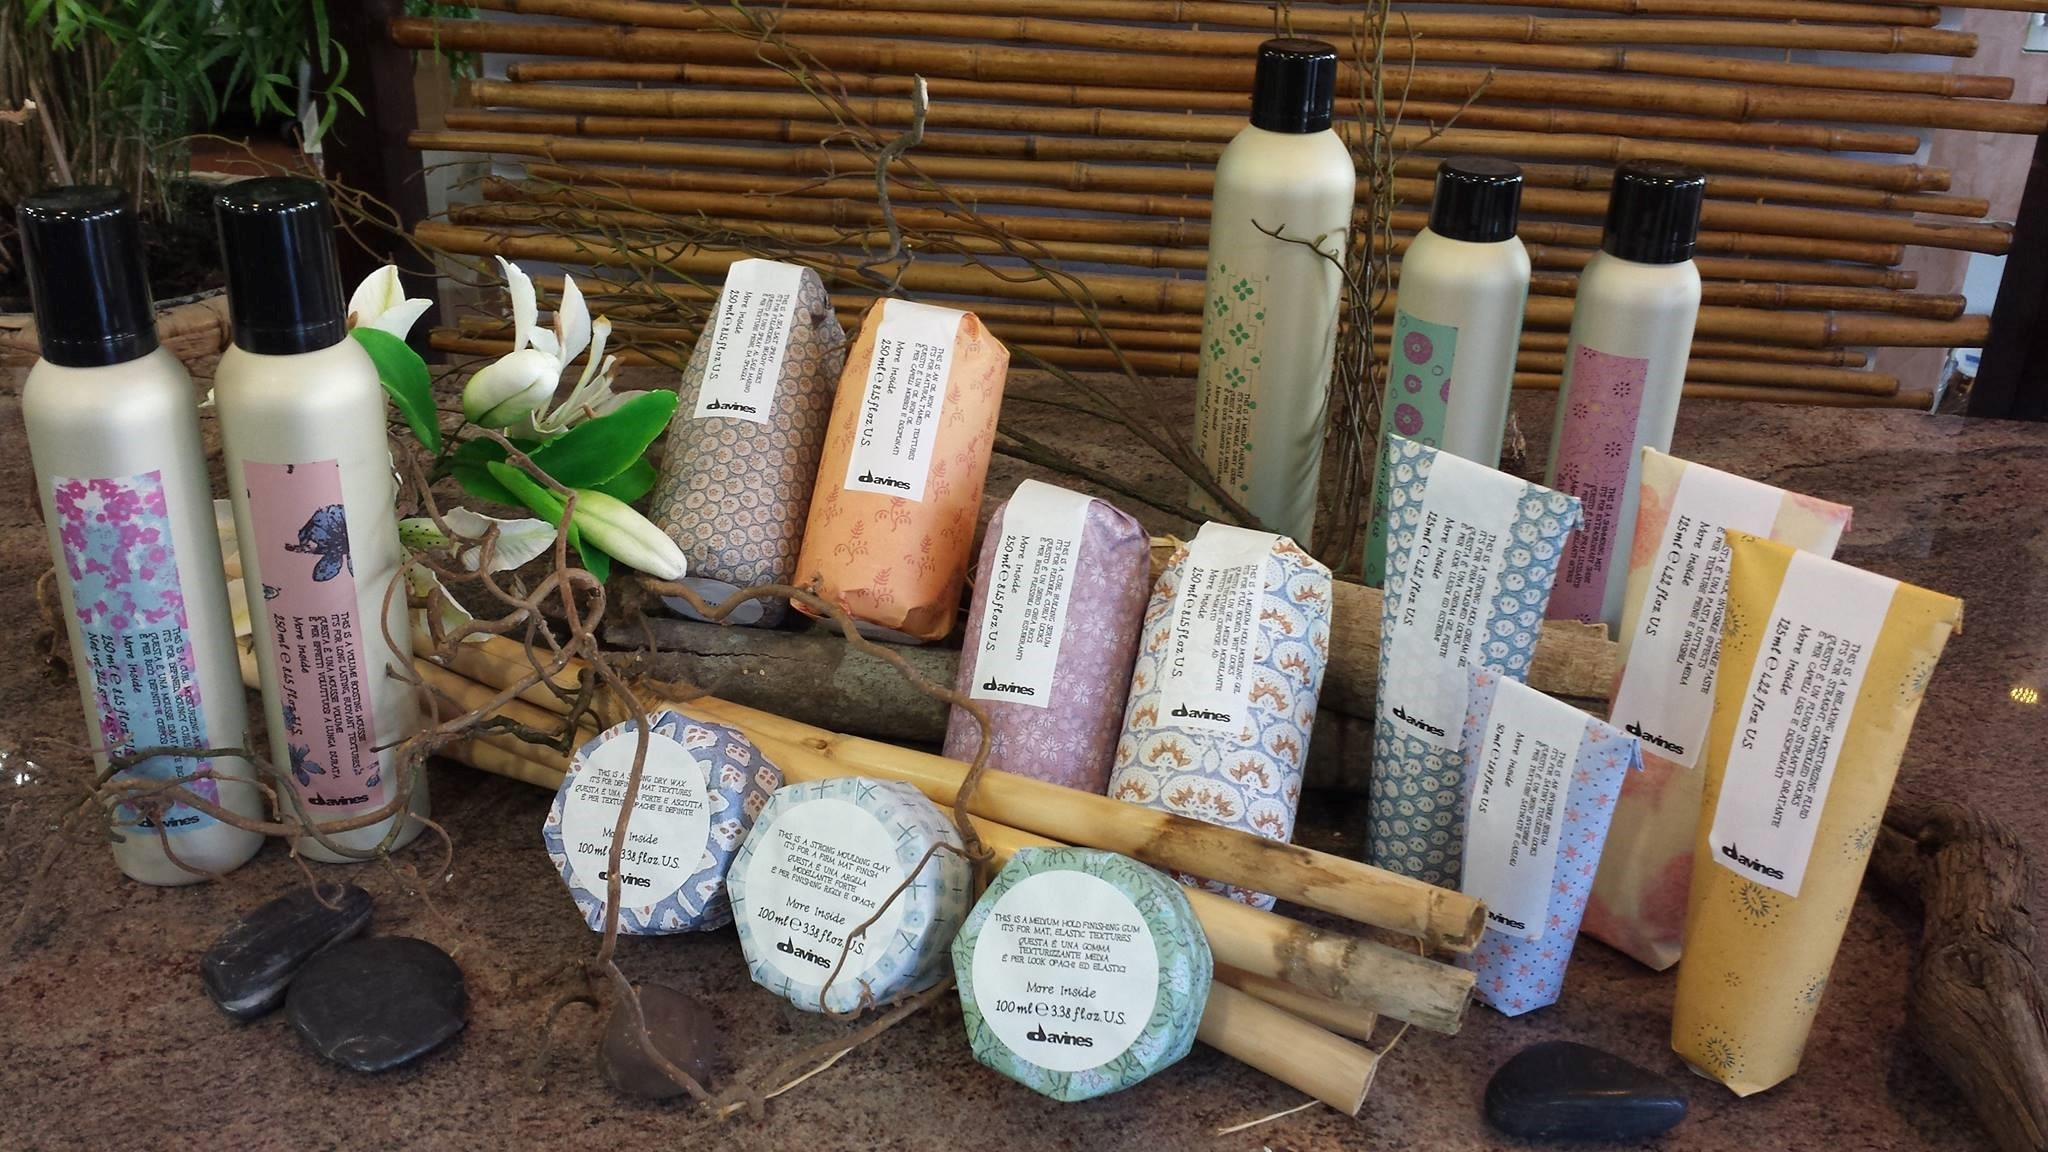 DAVINES MORE INSIDE STYLING HAIRCARE